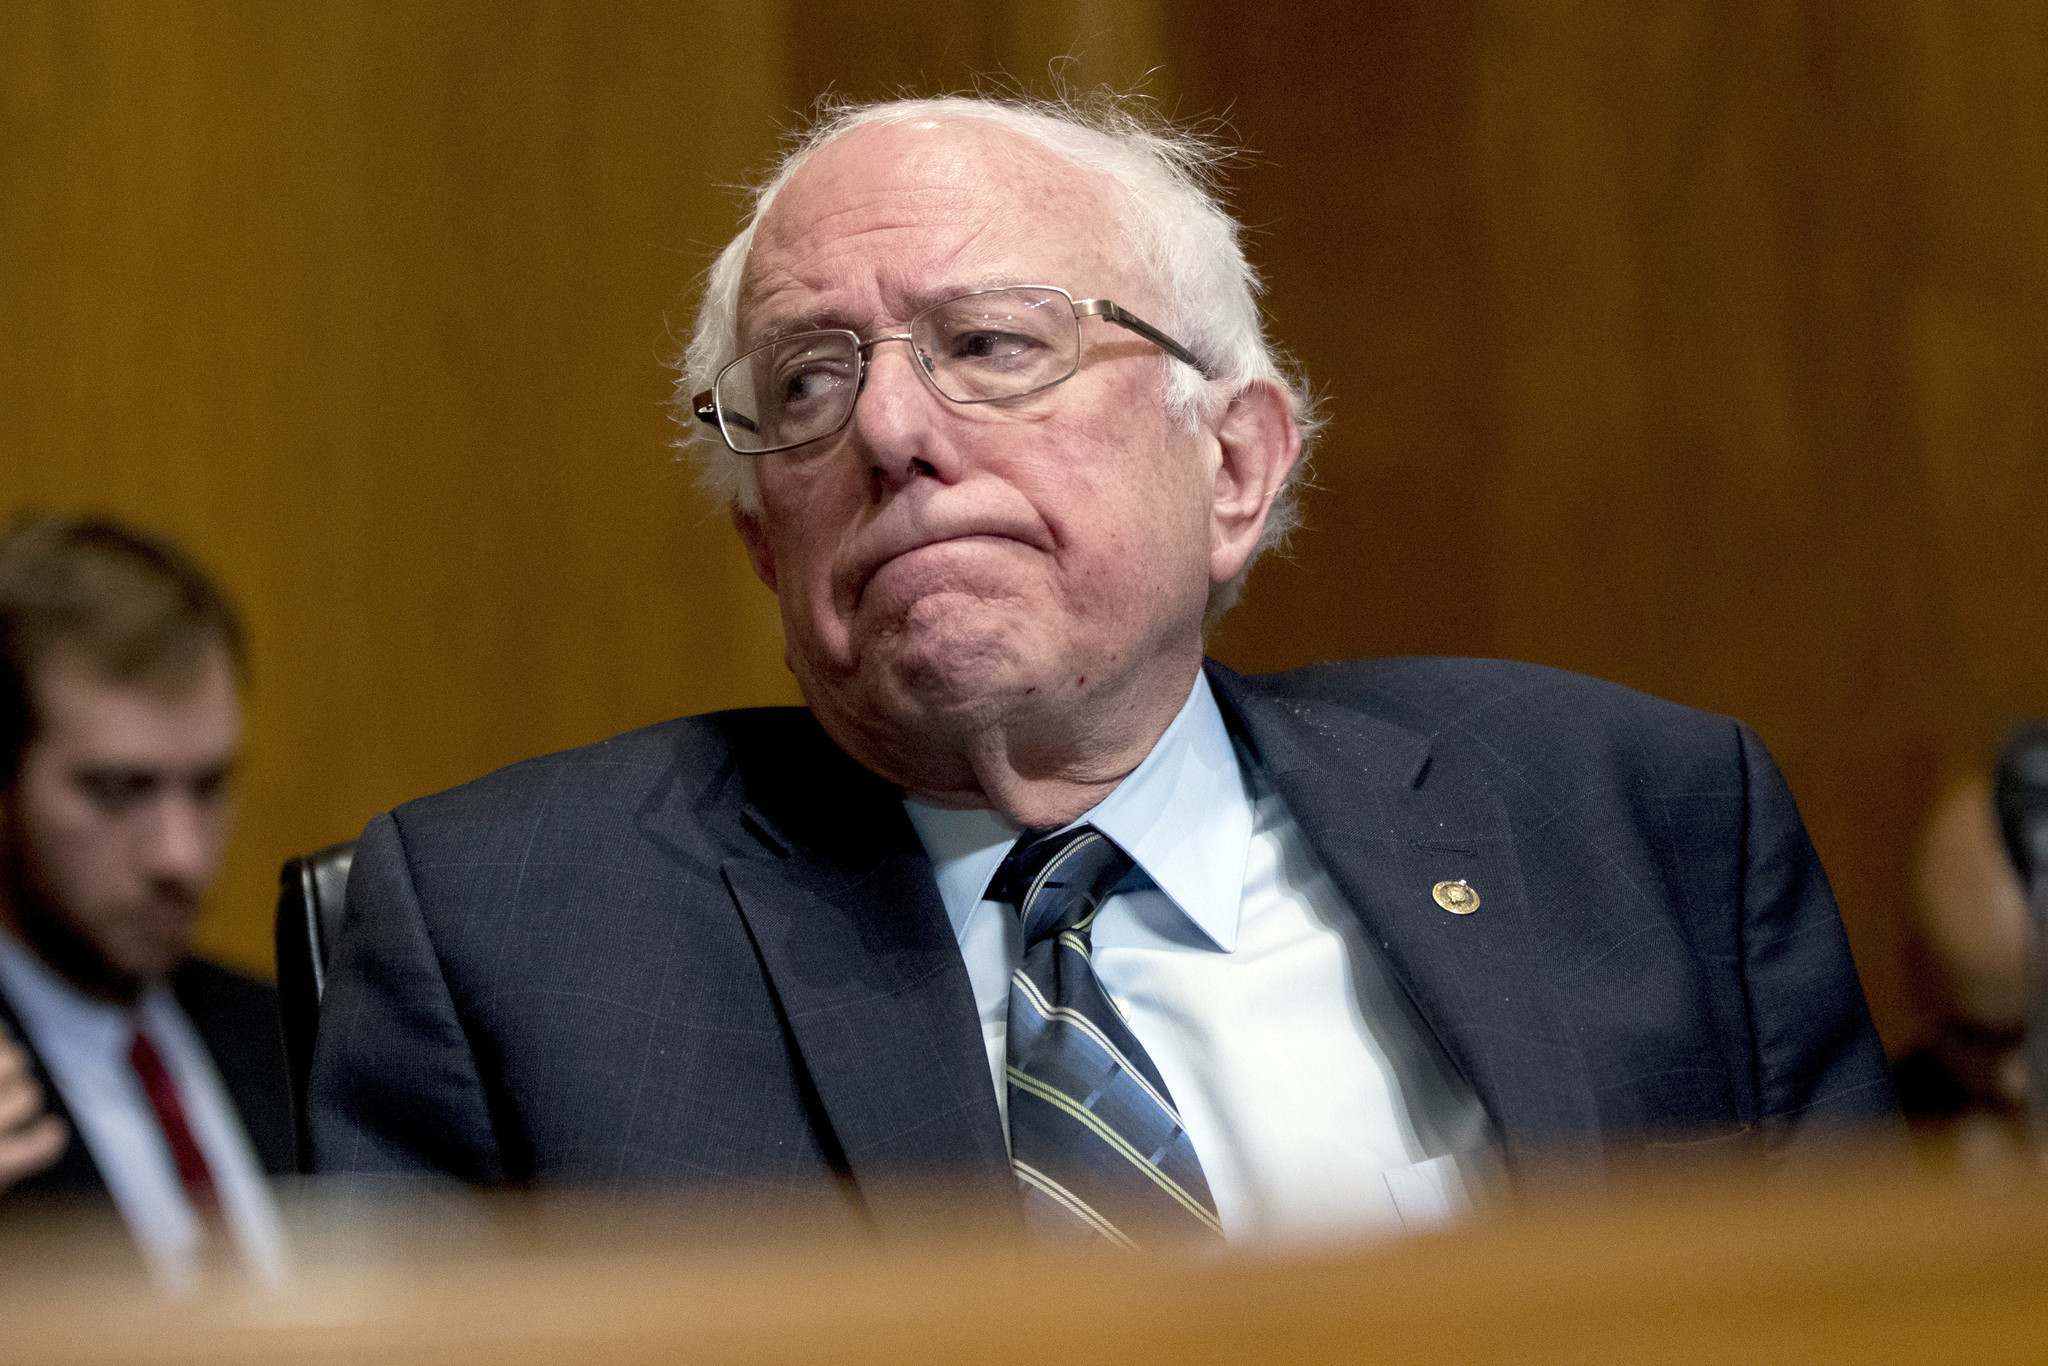 Bernie Sanders briefed by U.S. officials that Russia is trying to boost his presidential campaign